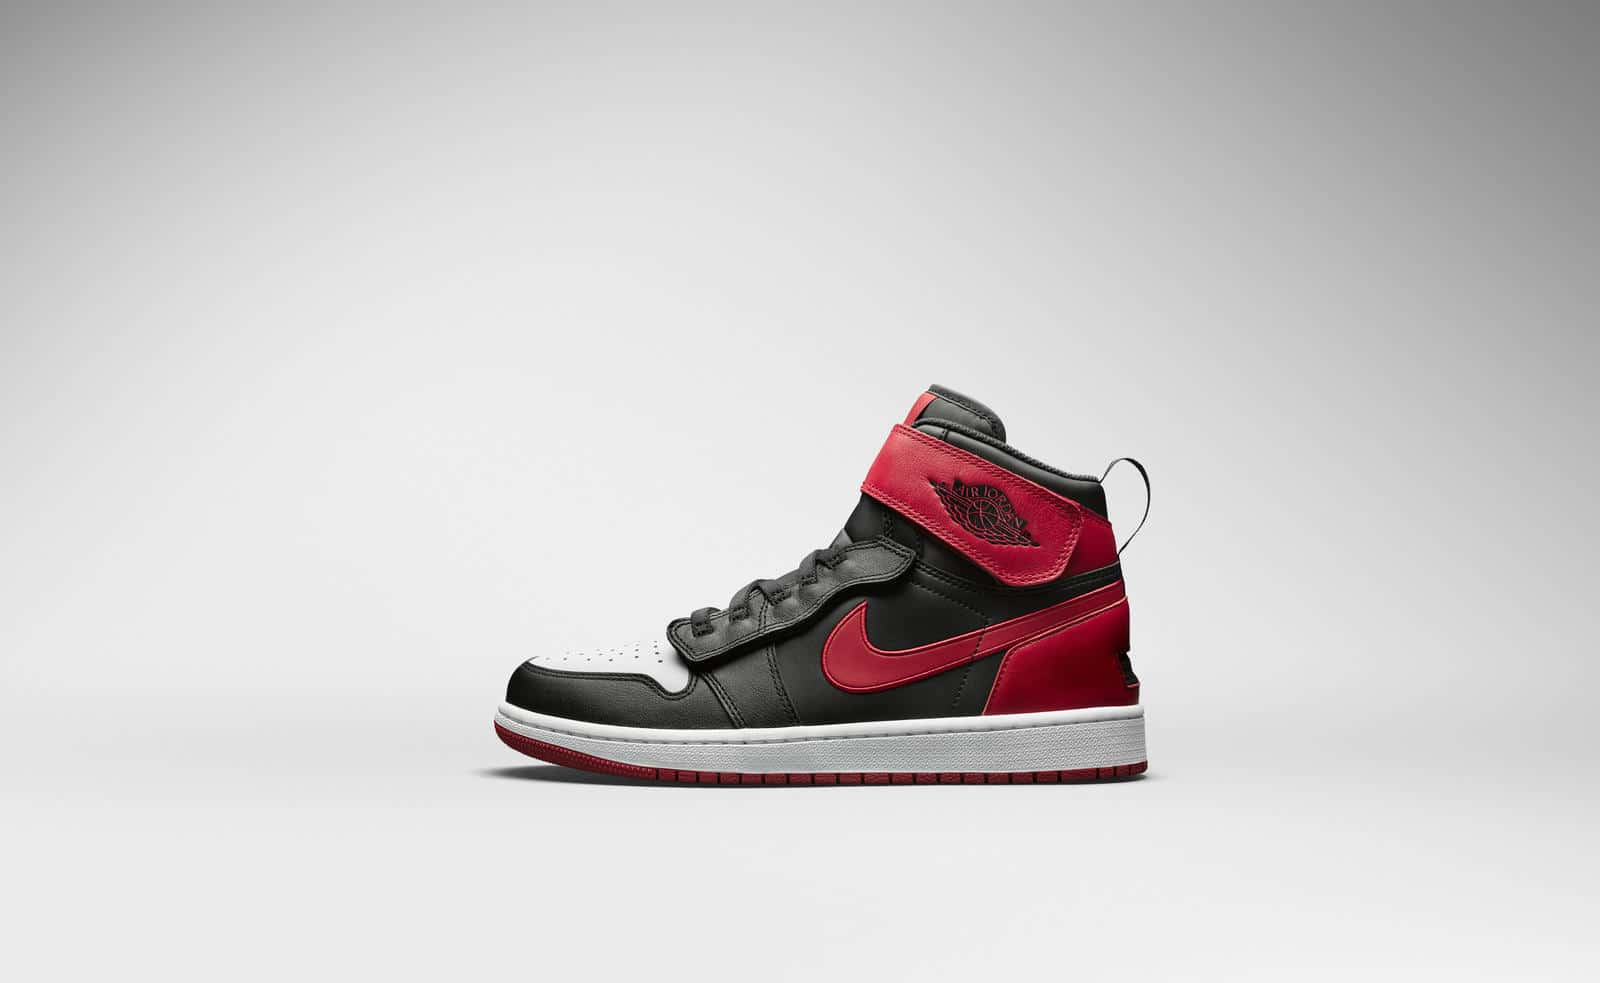 air melody 1 fearless jordan Chaussures Pas cher ym0wnv8ON